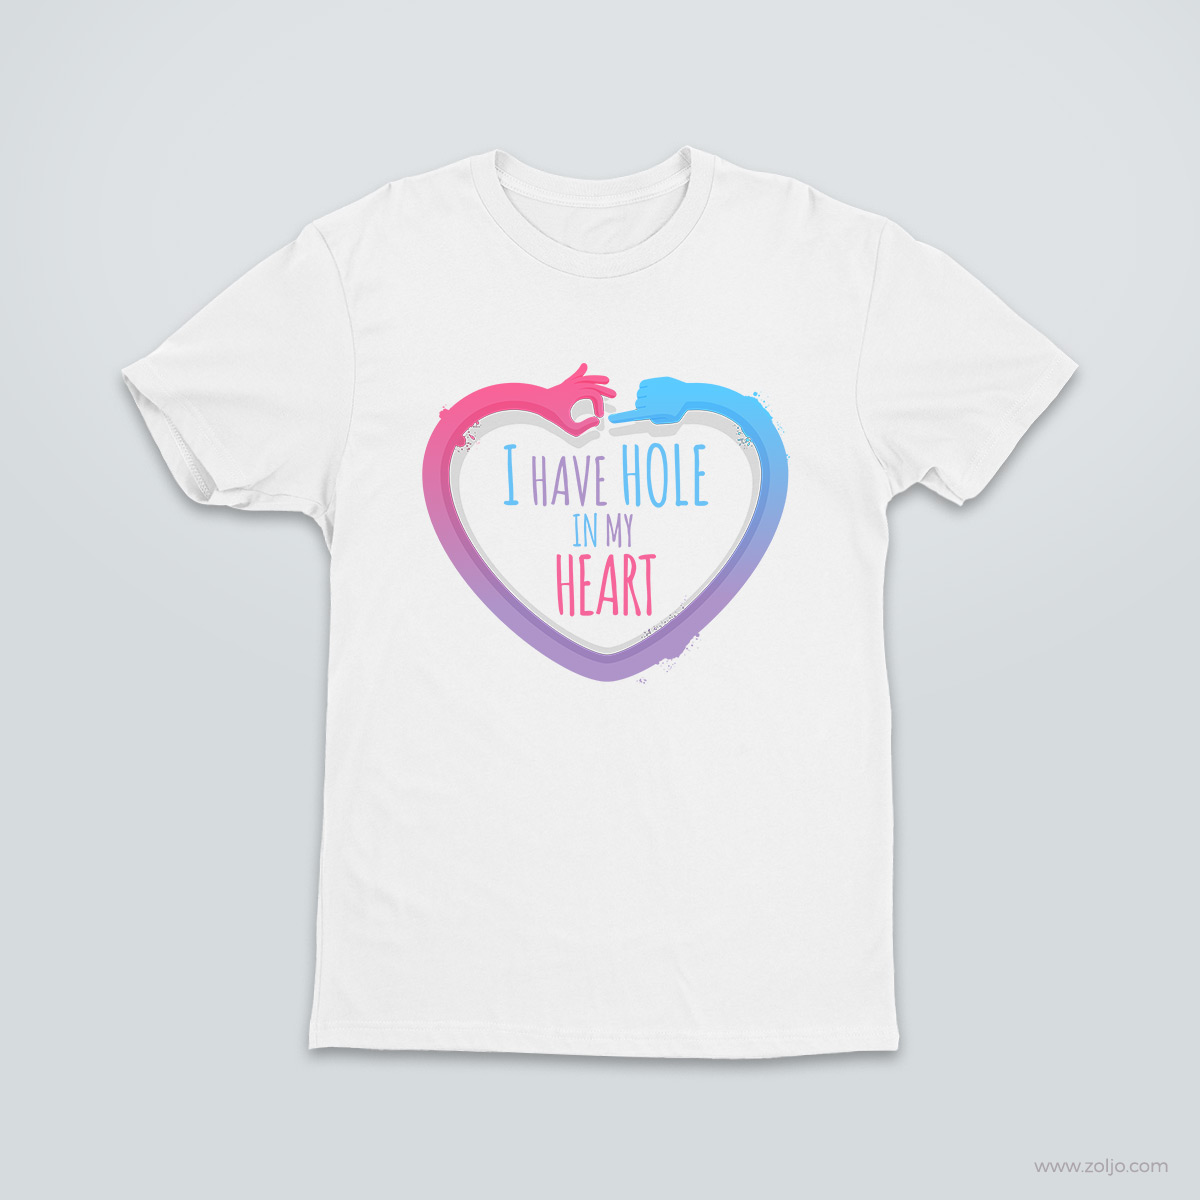 I have hole in my heart T-Shirt